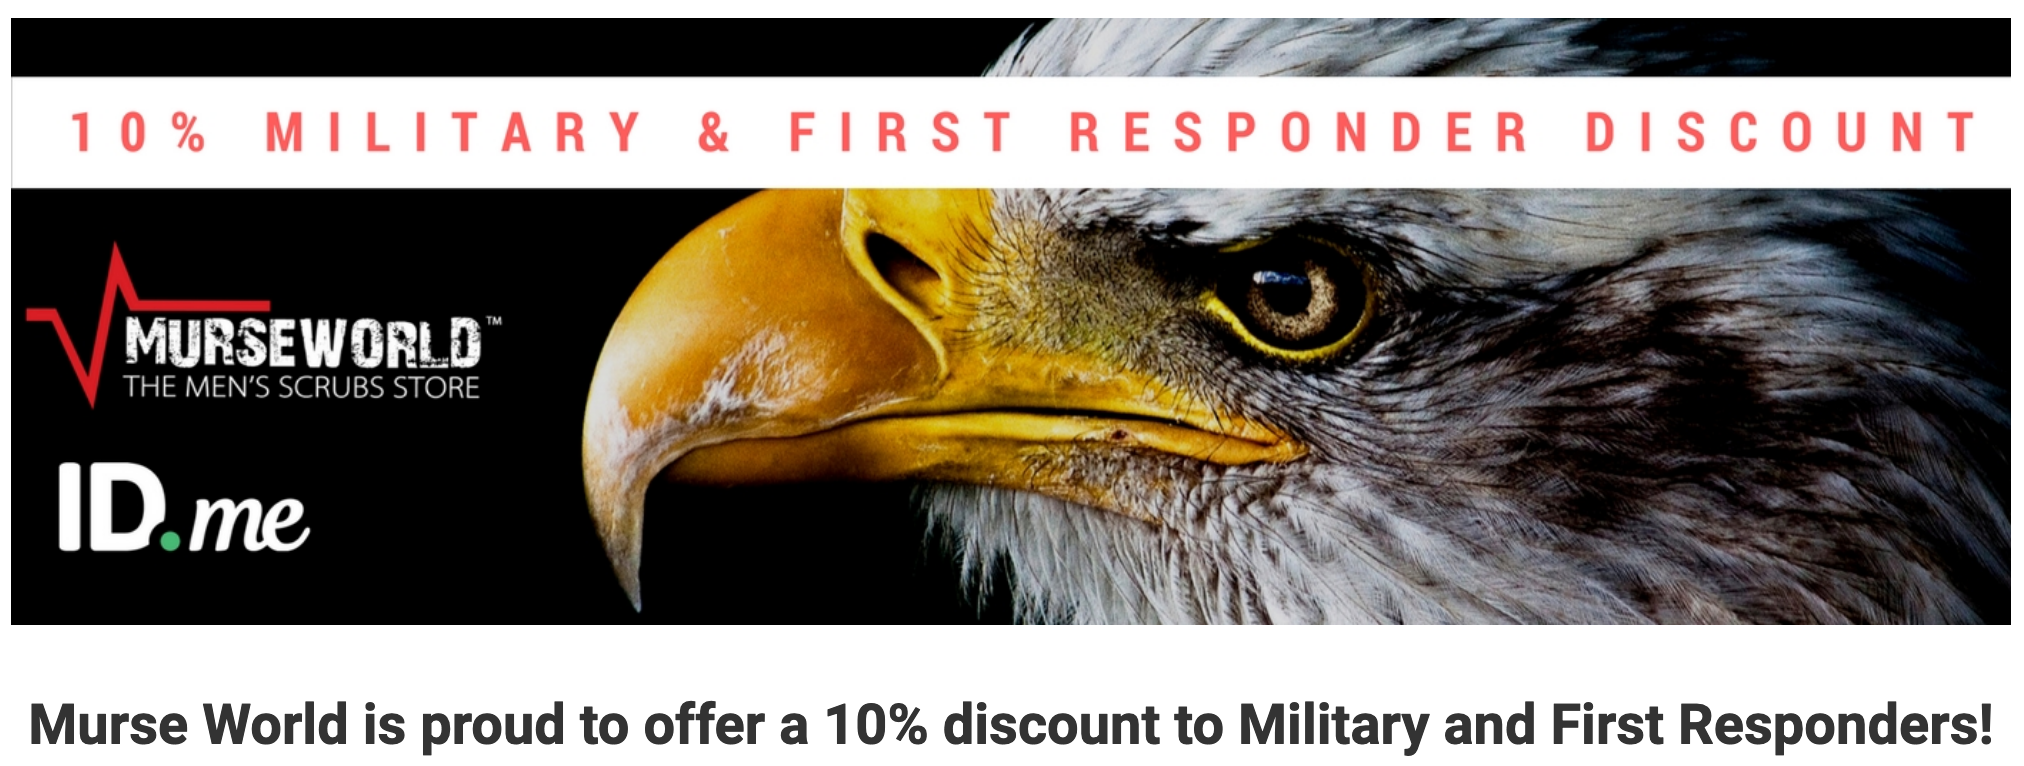 Murse World Military Veteran Discounts